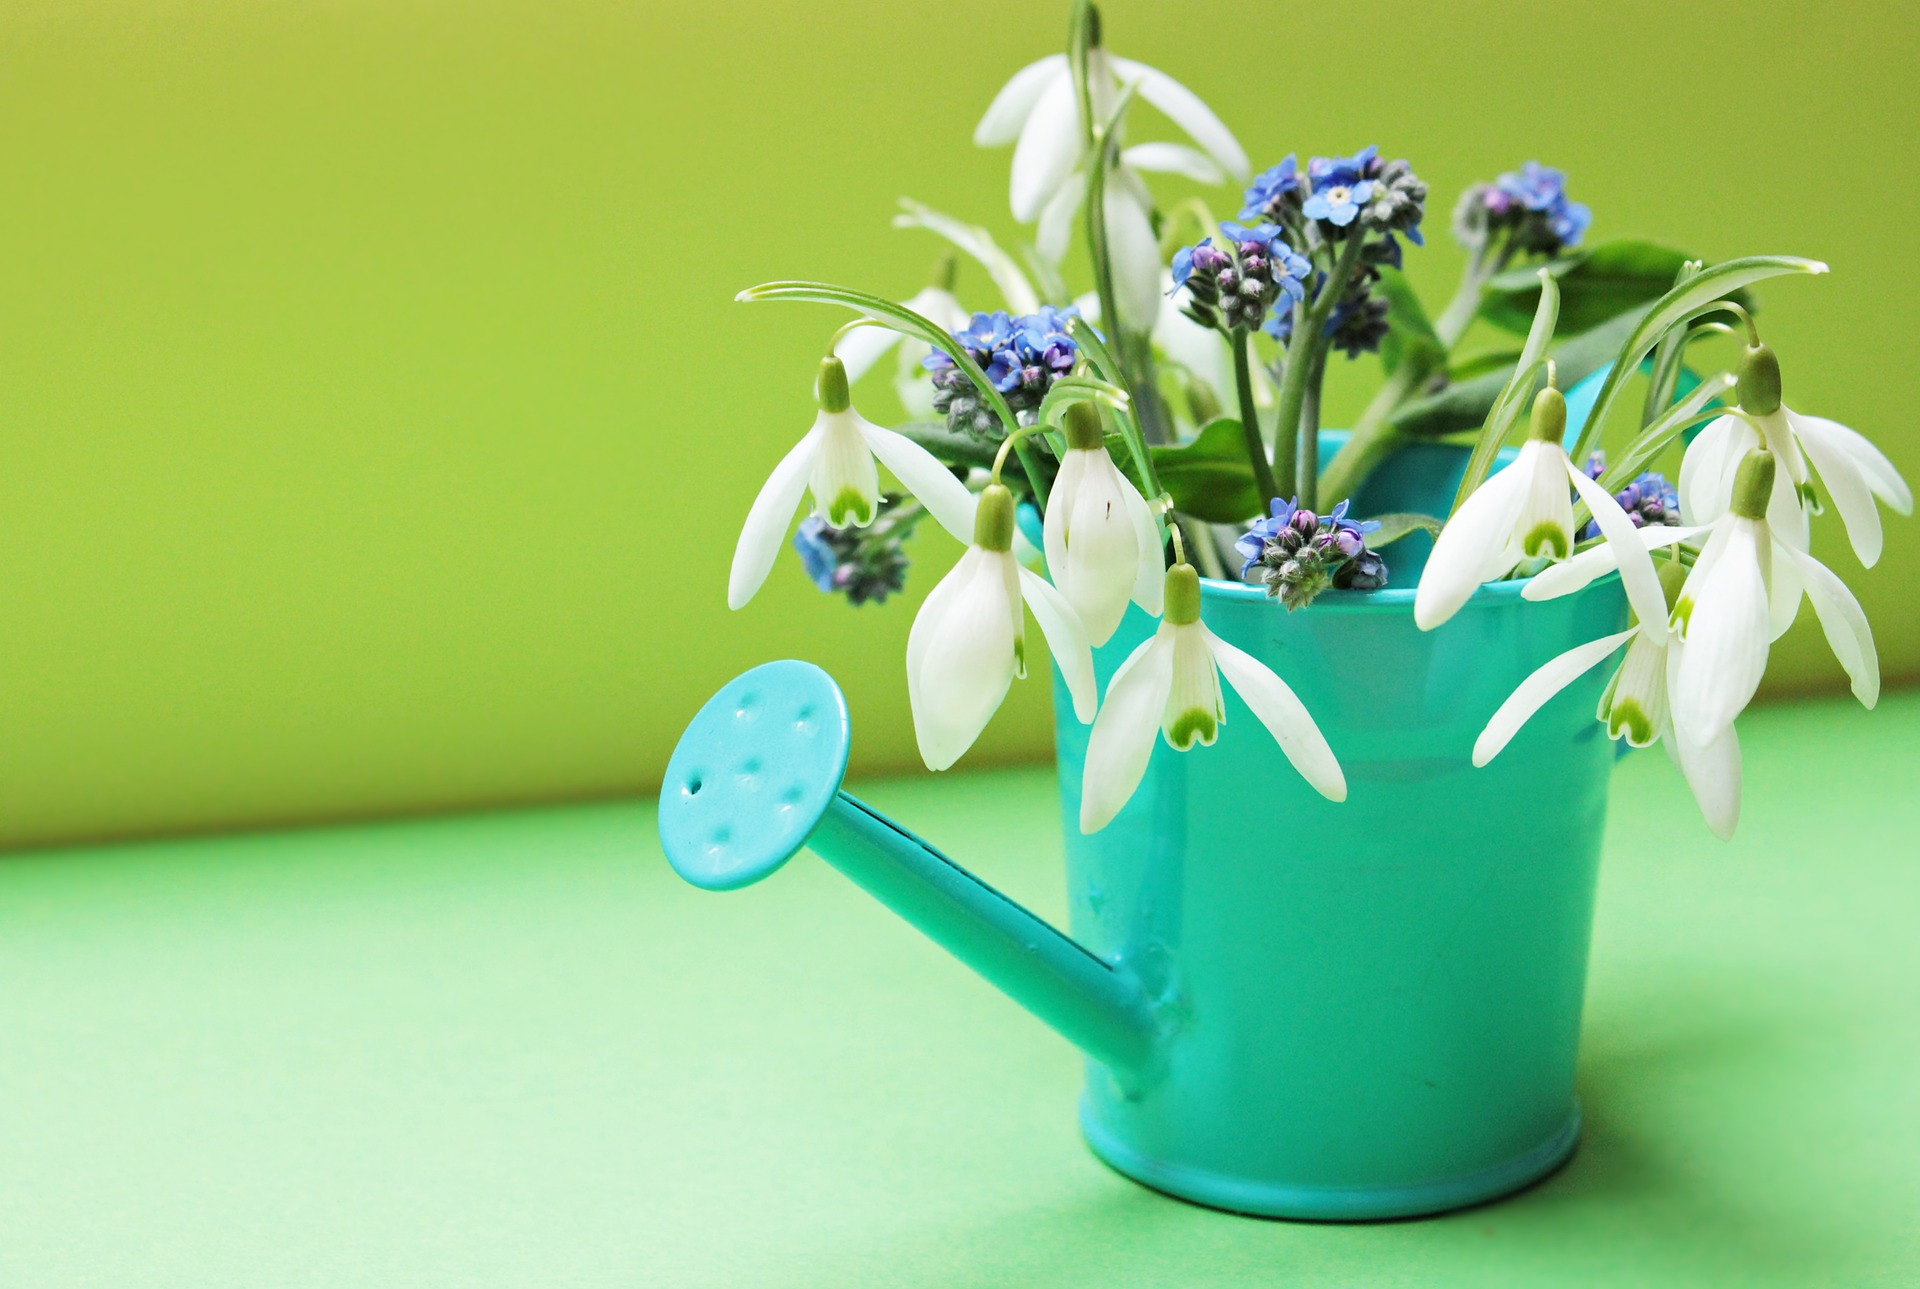 A watering can with flowers in it for springtime.